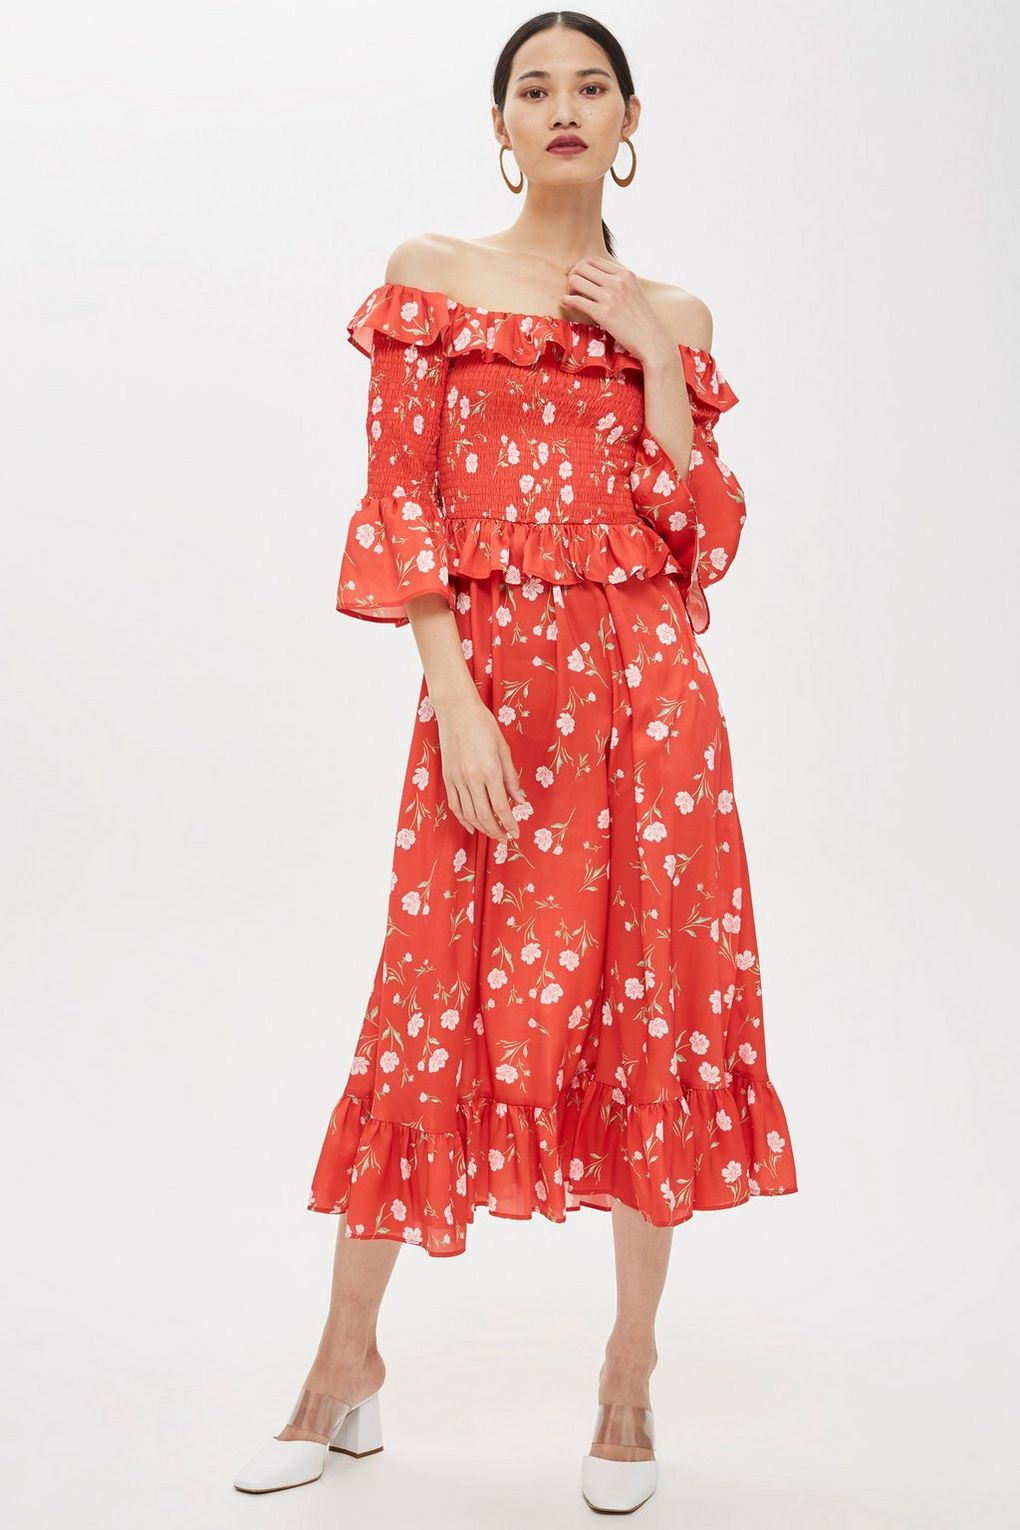 The printed midi dress. - And Other Stories win the award for this category, but Topshop are also in the running with a few more affordable options. One of these in your wardrobe will carry you through winter with a pair of black tights and western boots too.